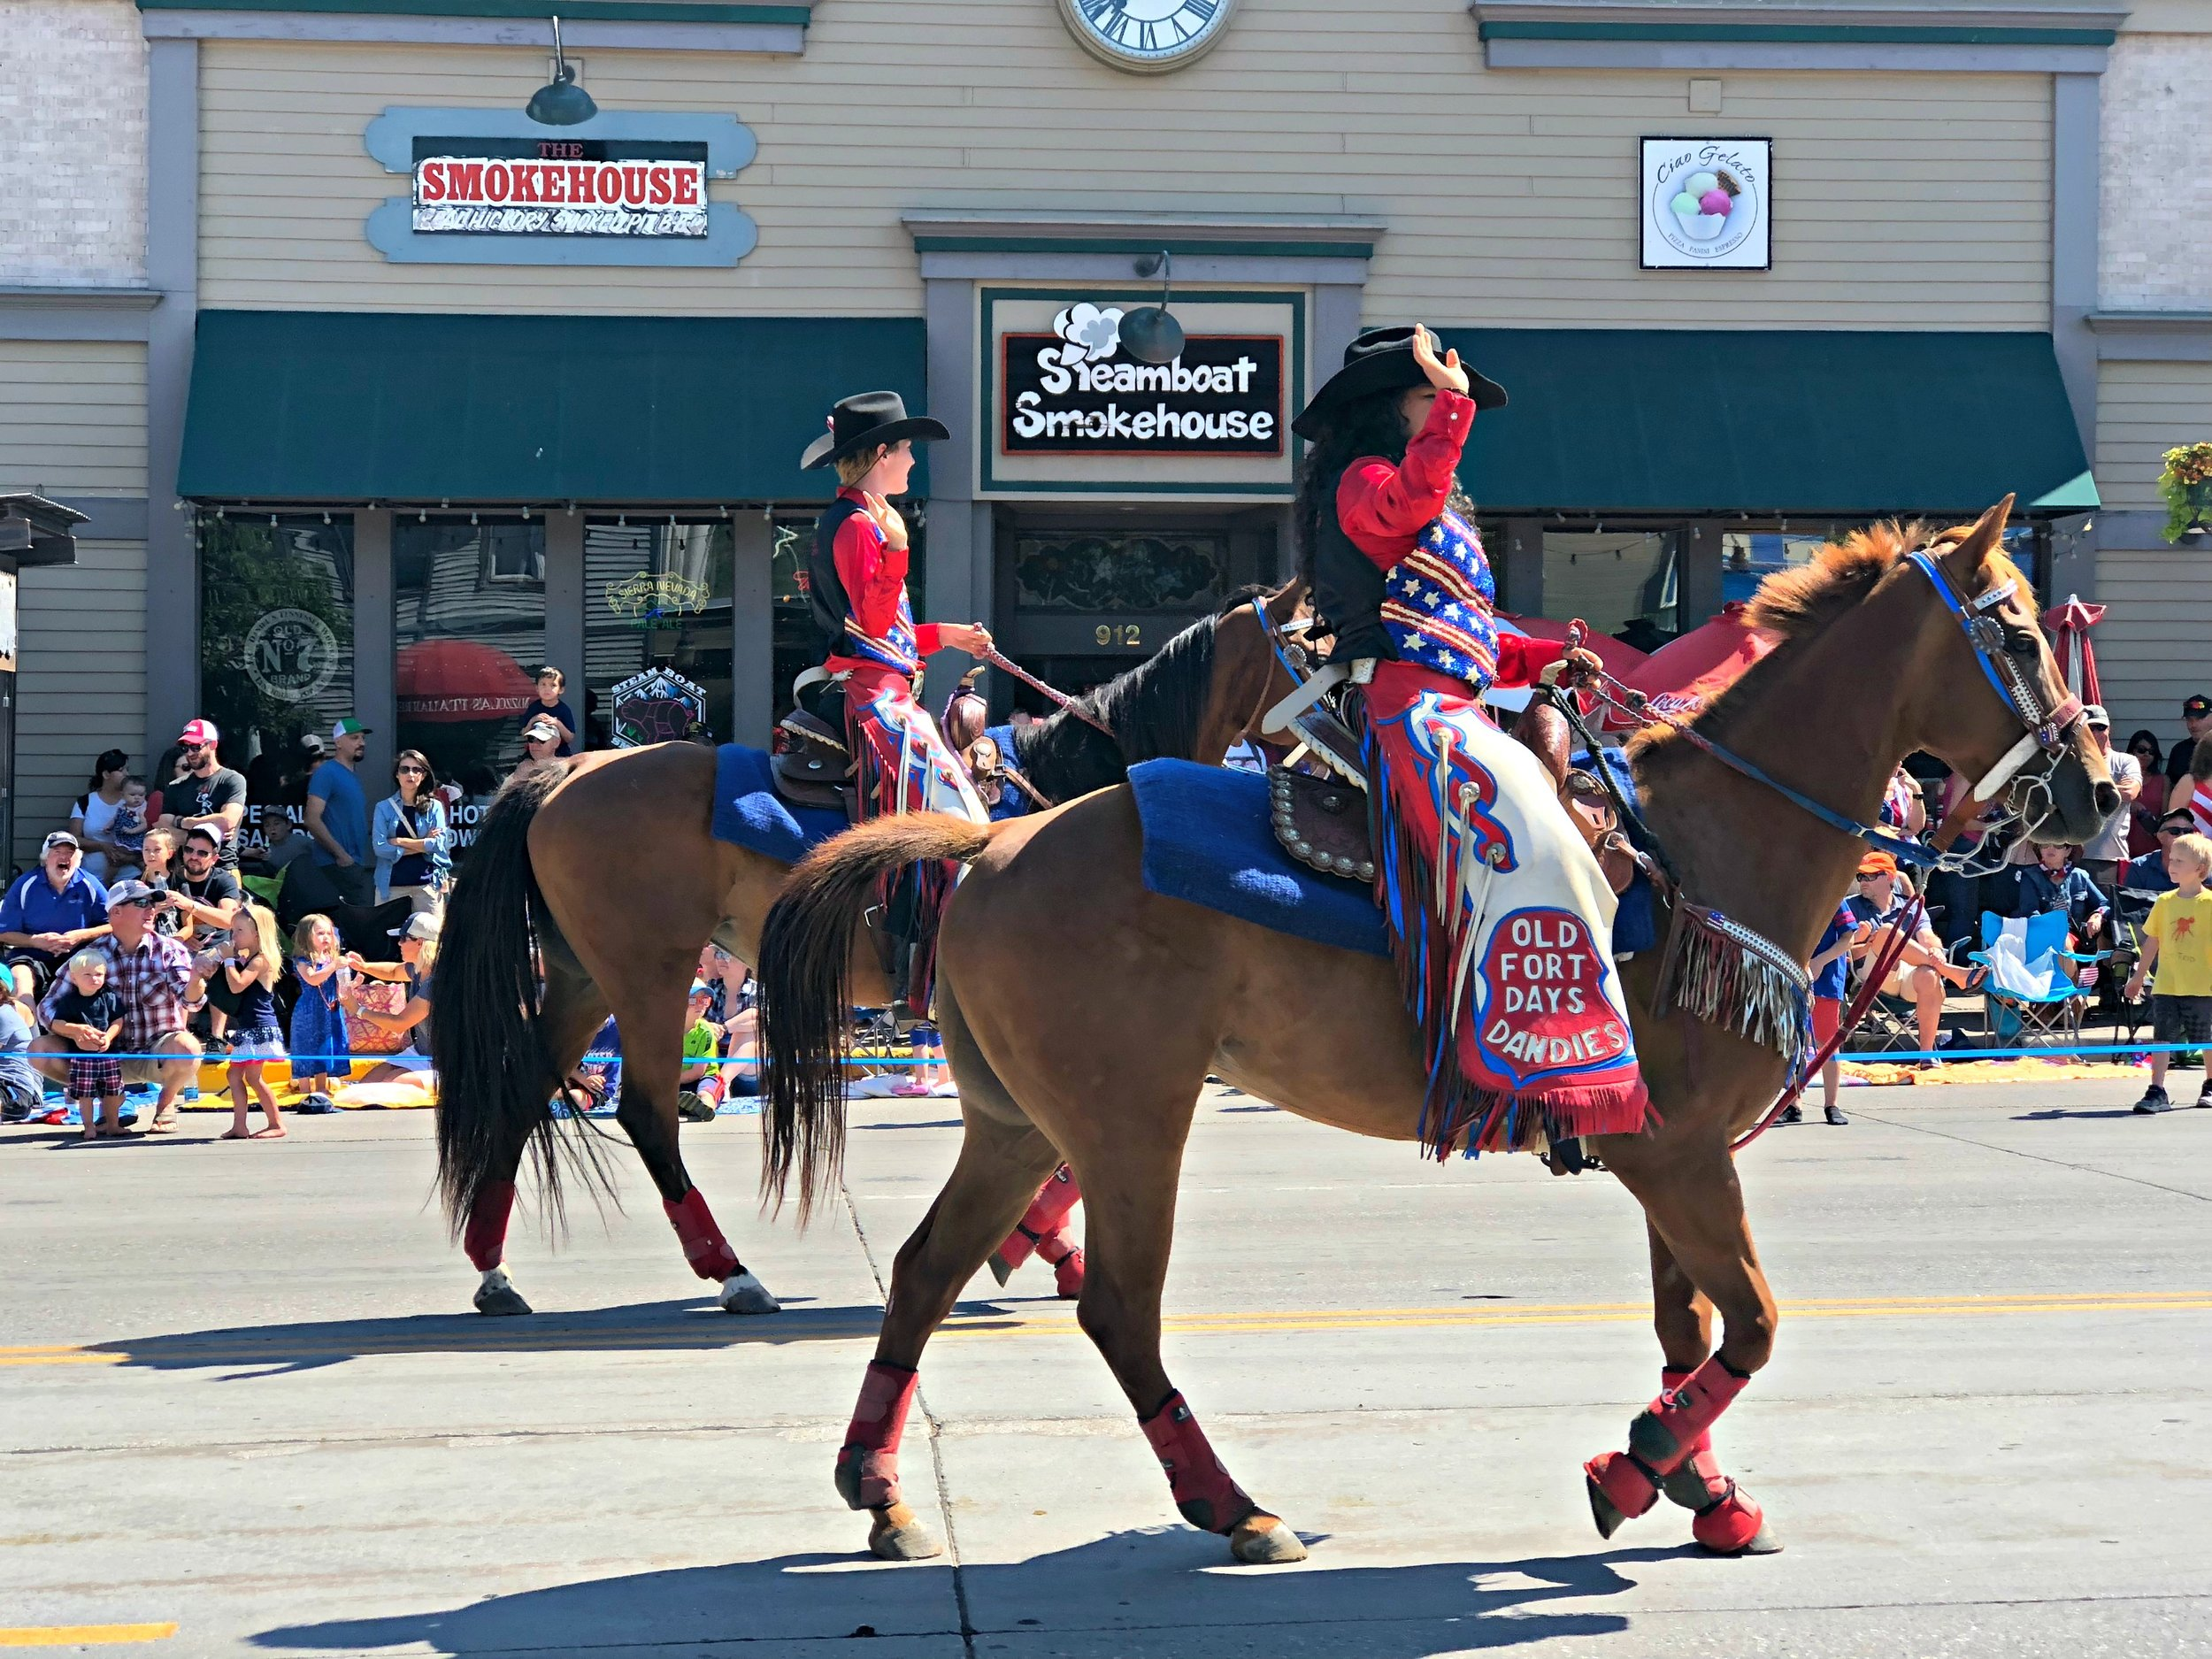 pro-rodeo-riders-steamboat-springs-colorado